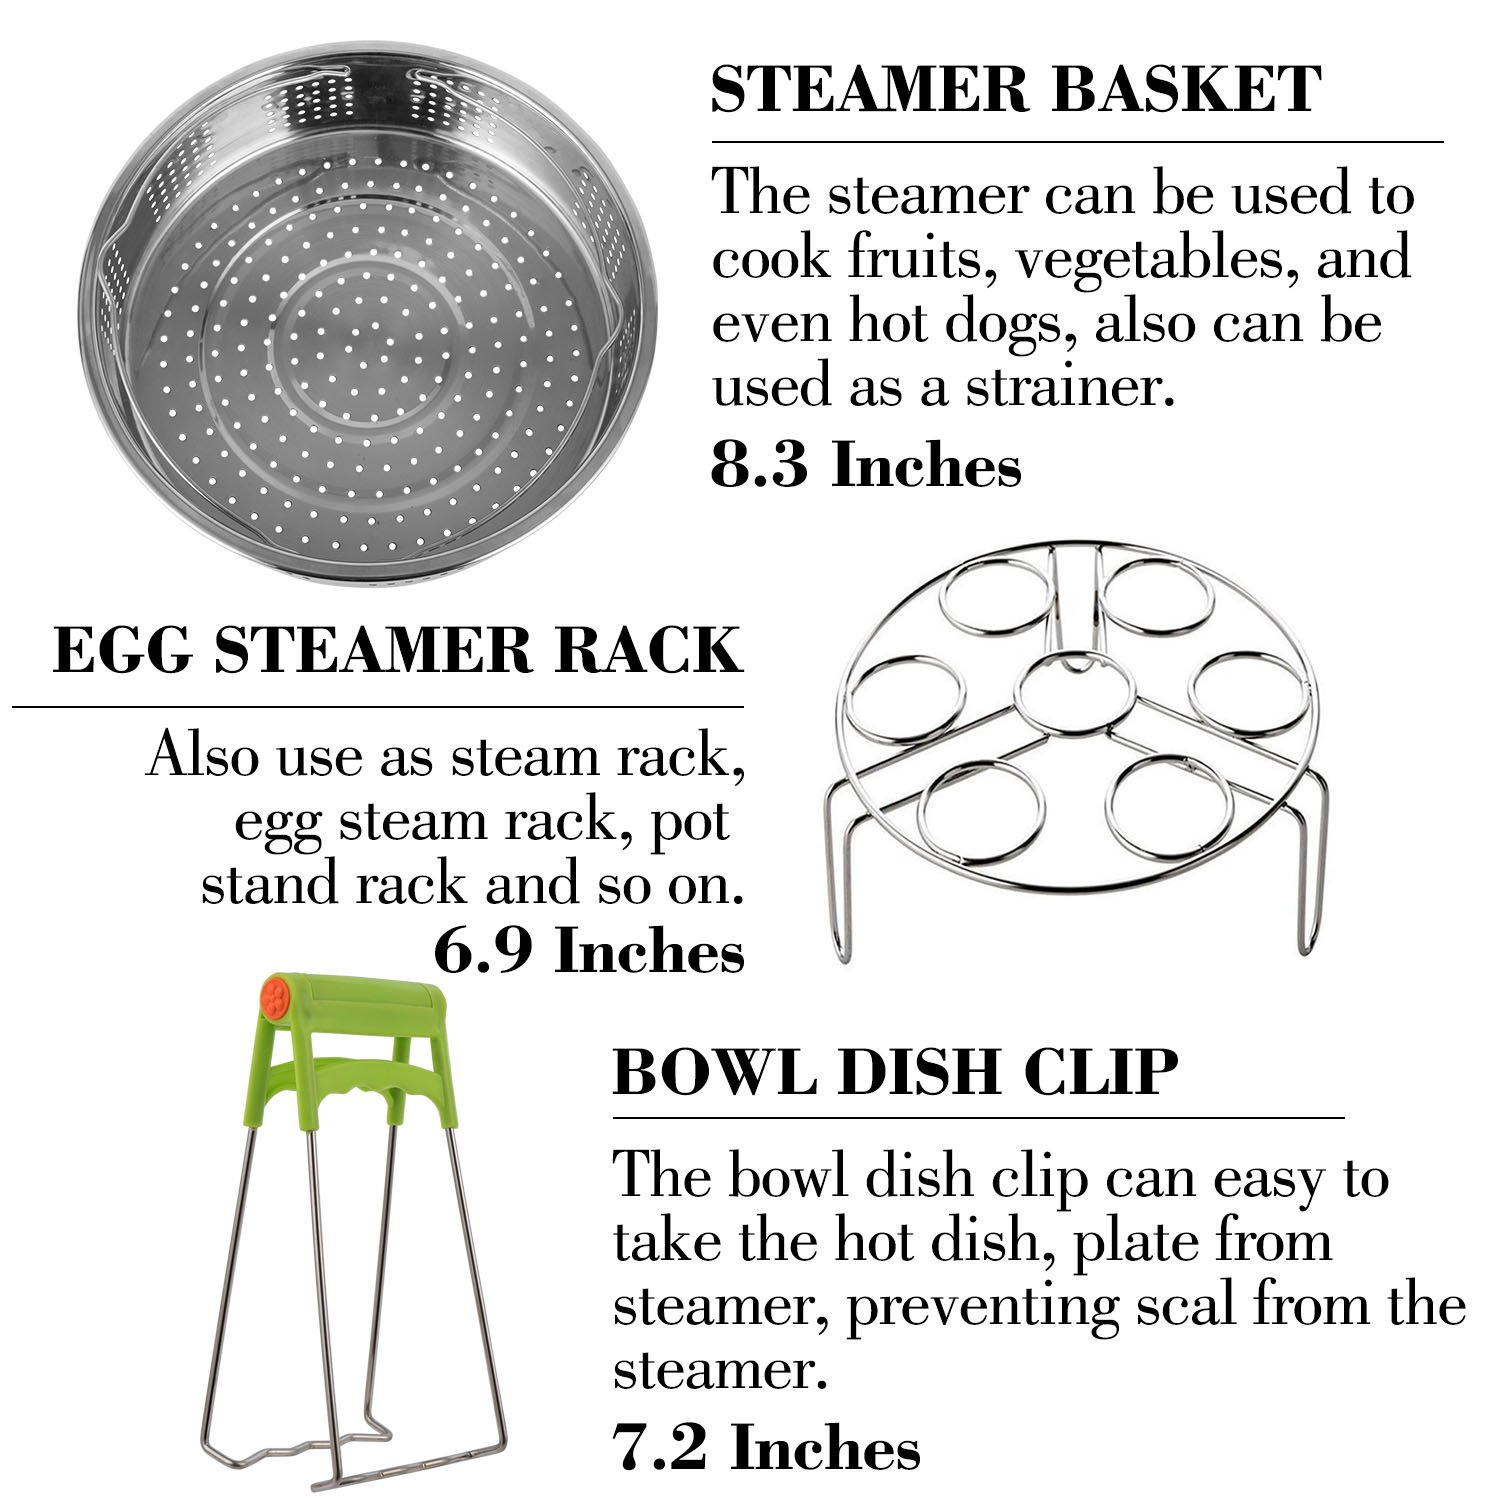 Vencer Deluxe Modern Spiraling Design Metal Freestanding Egg Skelter / Dispenser Rack (Black) VKO-001 COMINHKPR150742